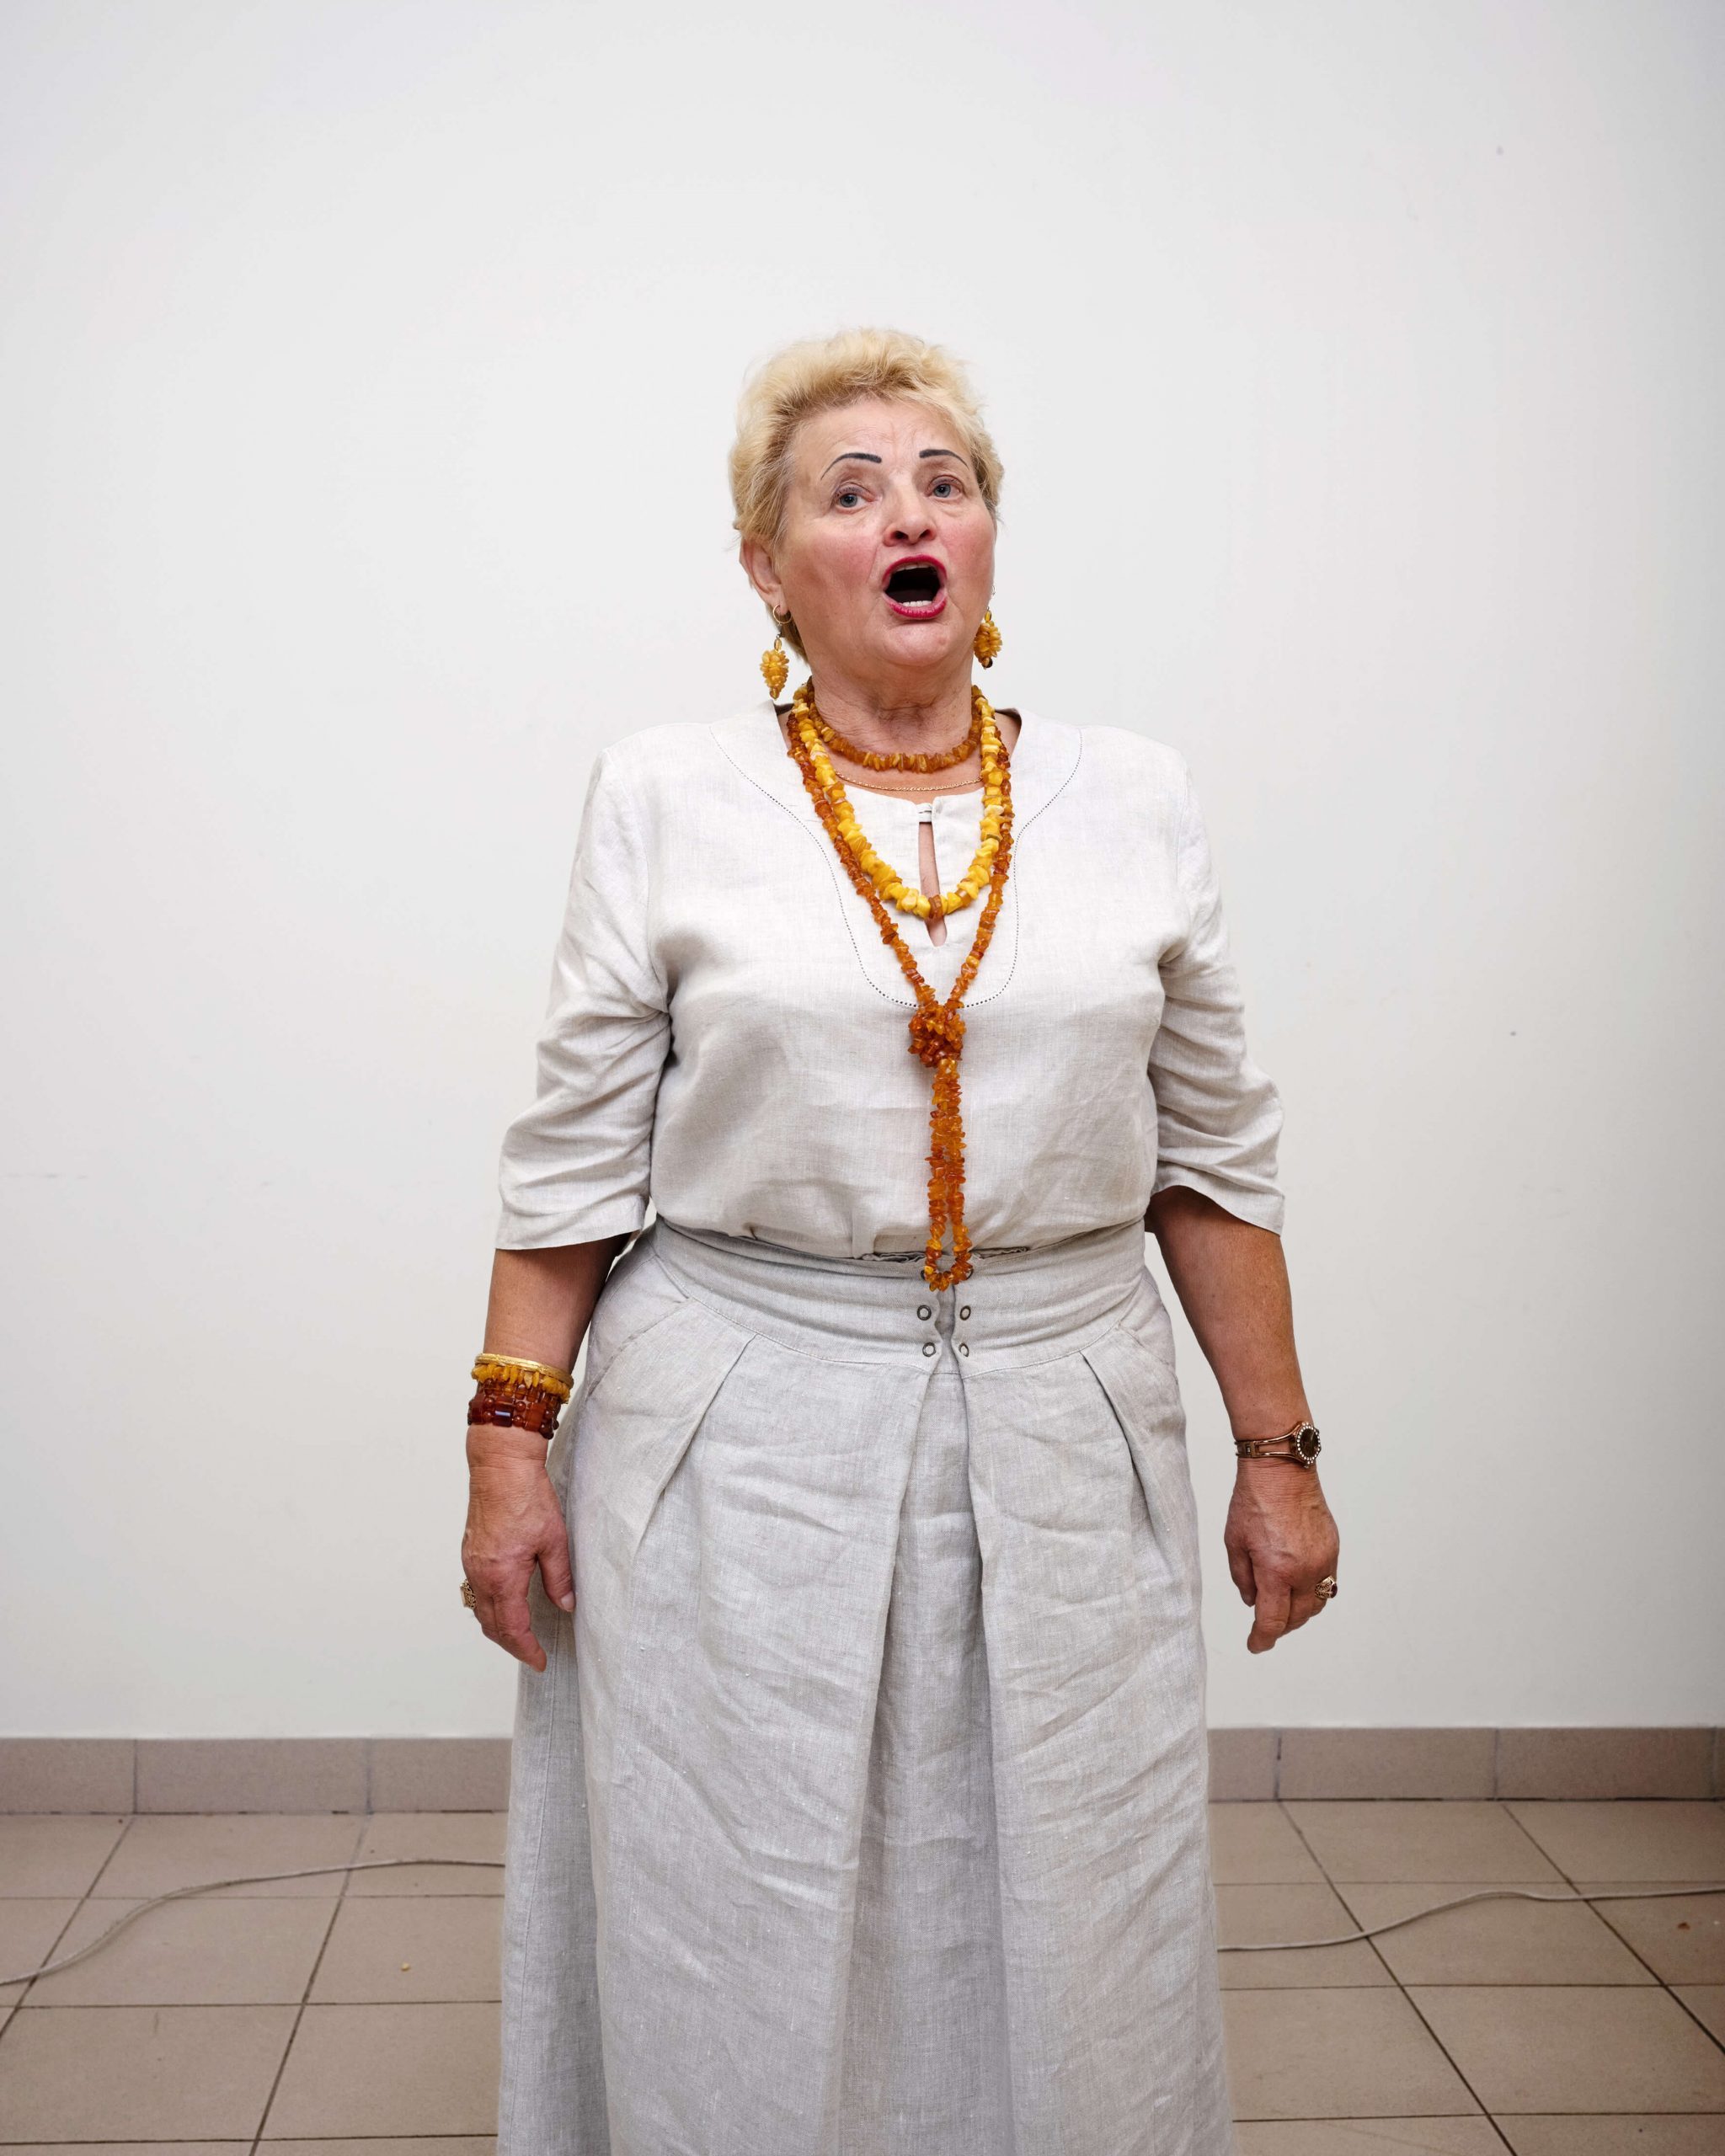 THE EUROPEANS -Arnold van Bruggen & Rob Hornstra the south west collective of photography ltd women in white singing